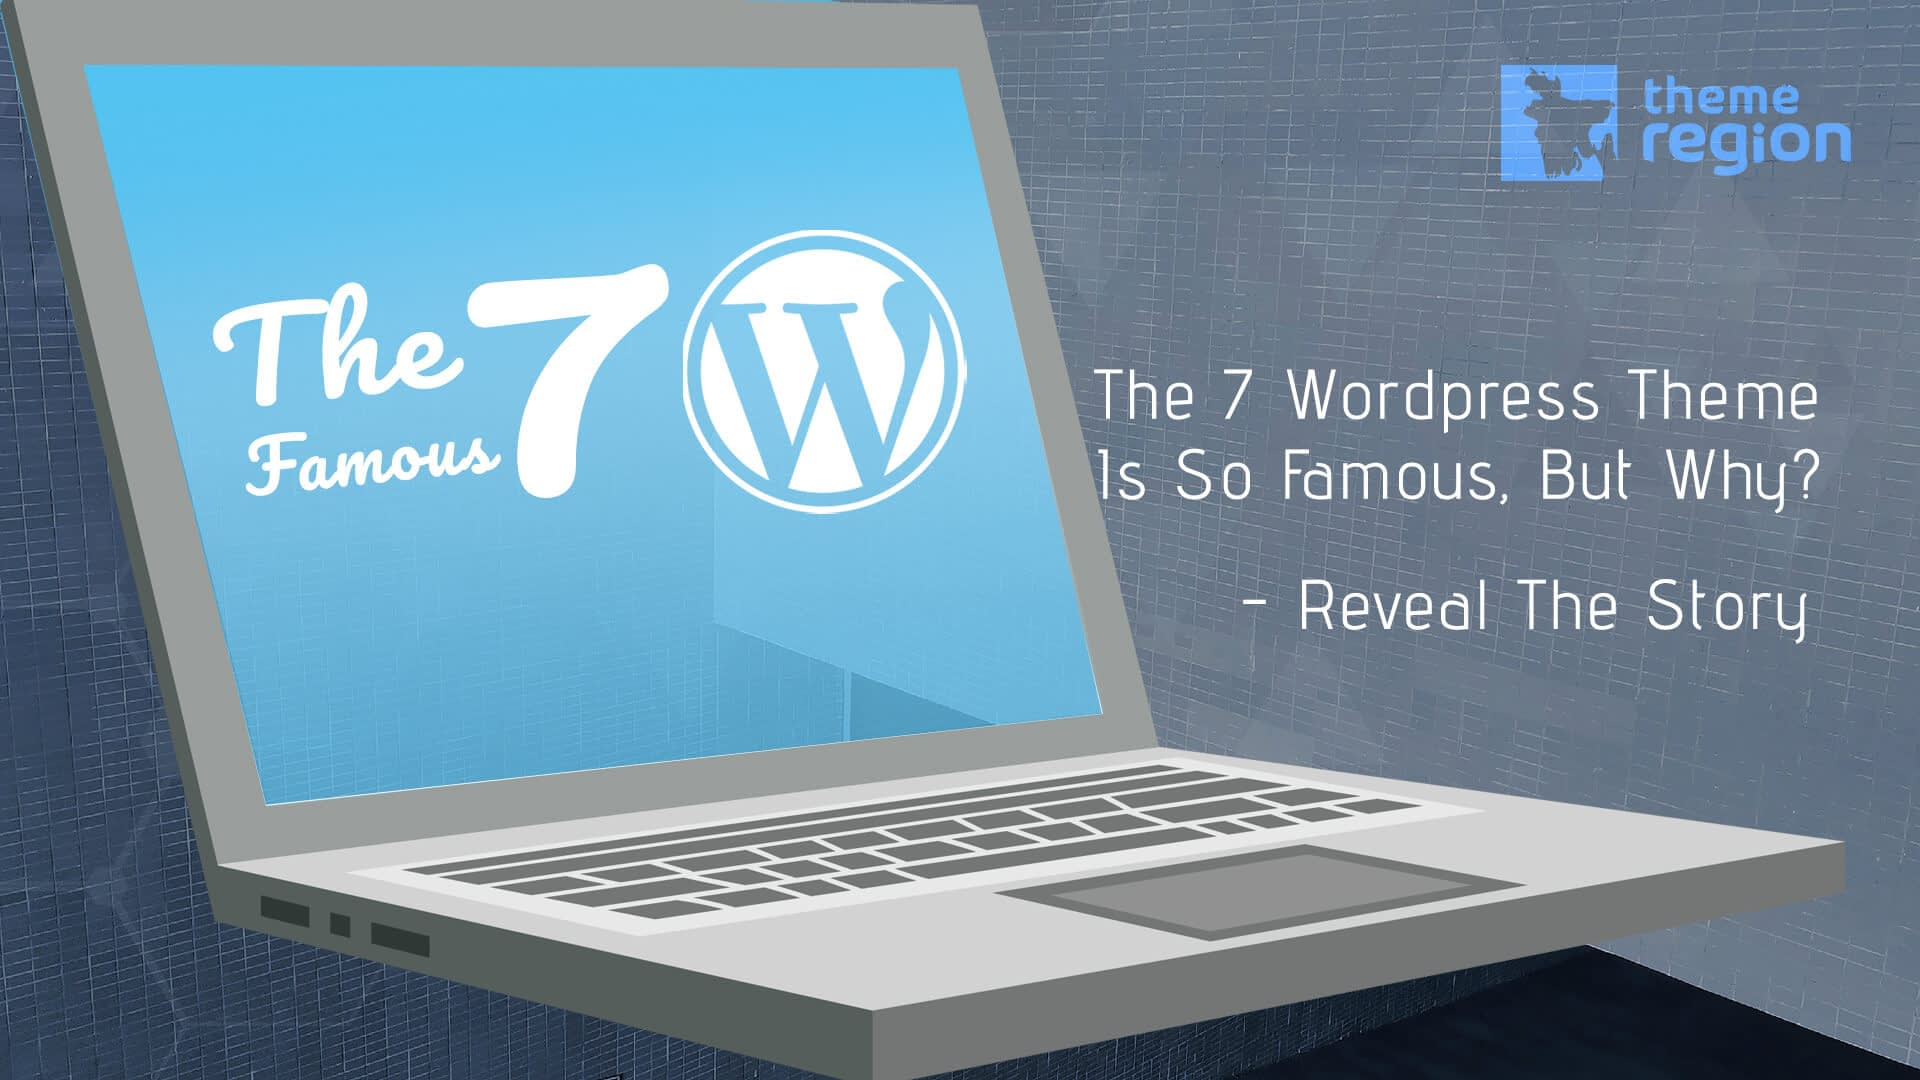 The 7 WordPress Theme Is So Famous, But Why? – Reveal The Story